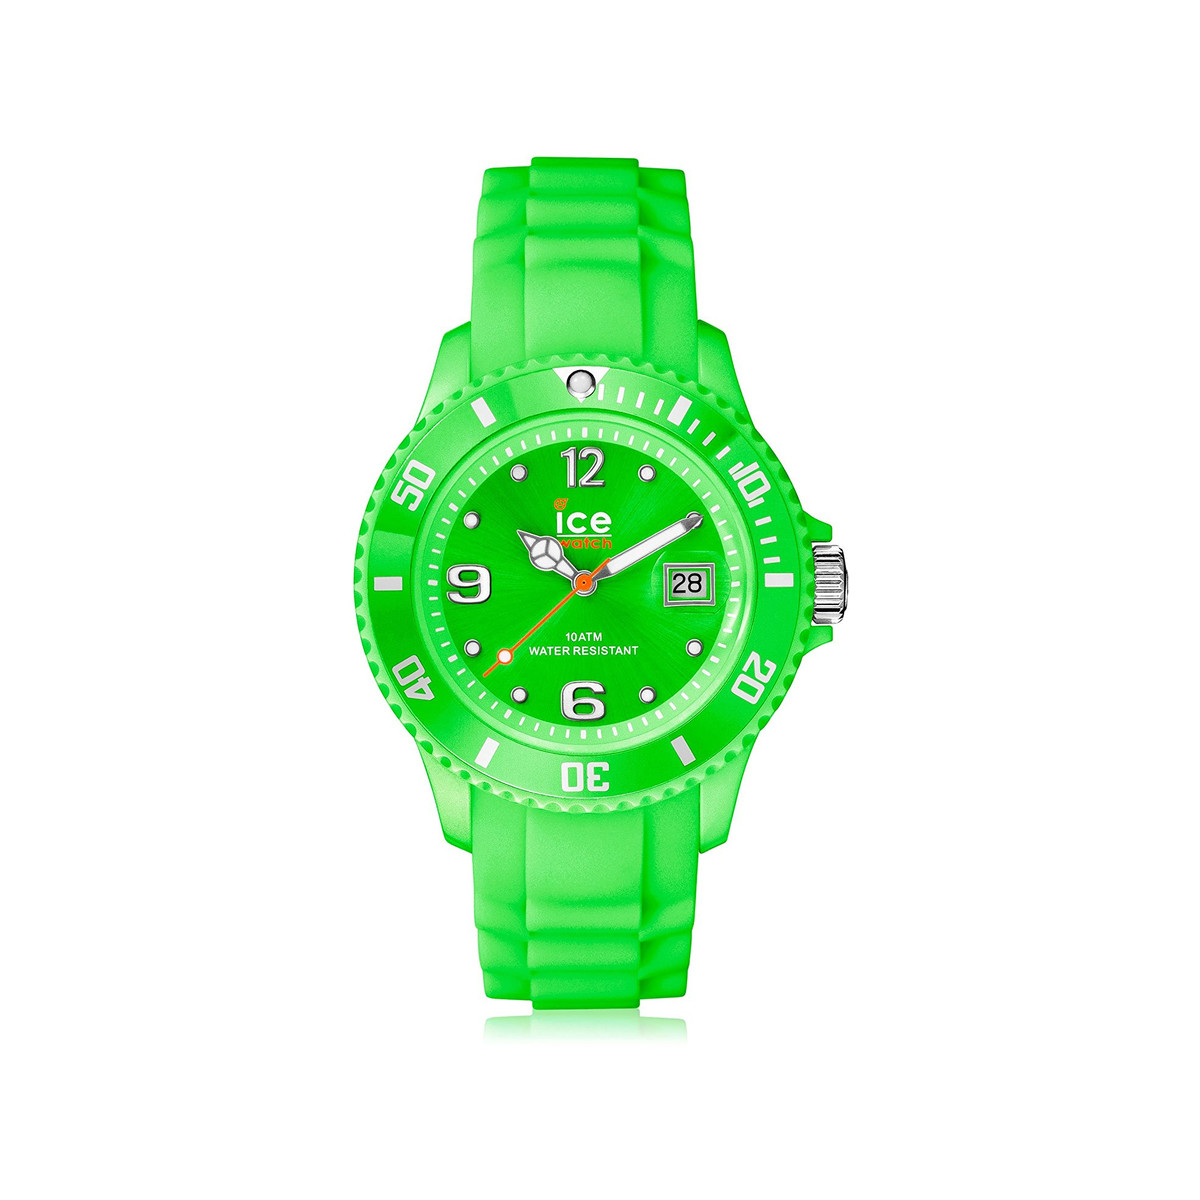 Montre Ice Watch mixte plastique silicone vert